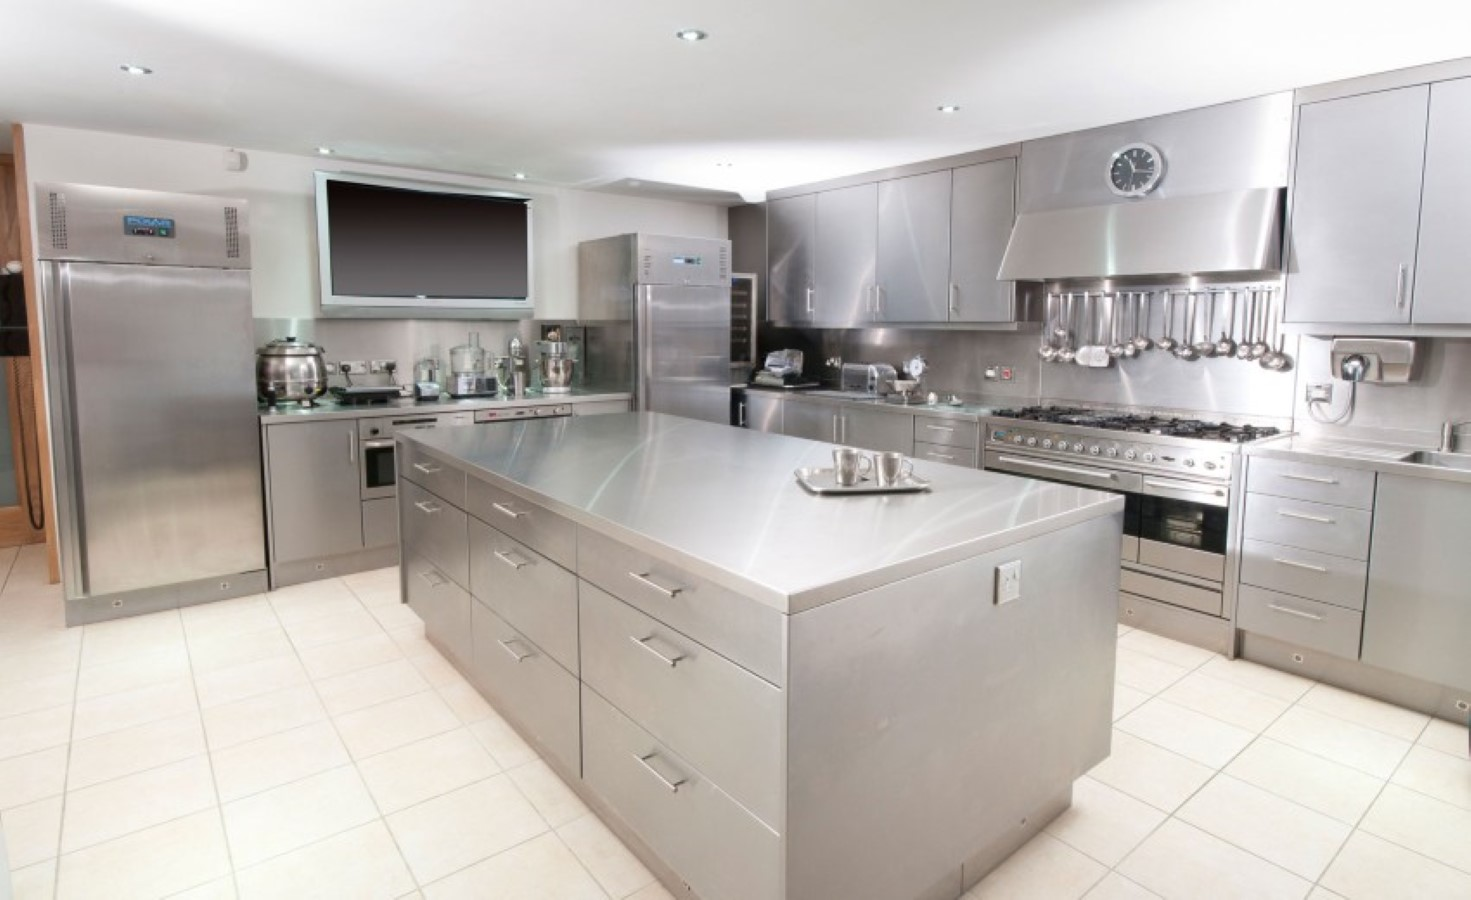 fascinating stainless steel countertop and kitchen furniture set design feat contemporary white floor tile idea1